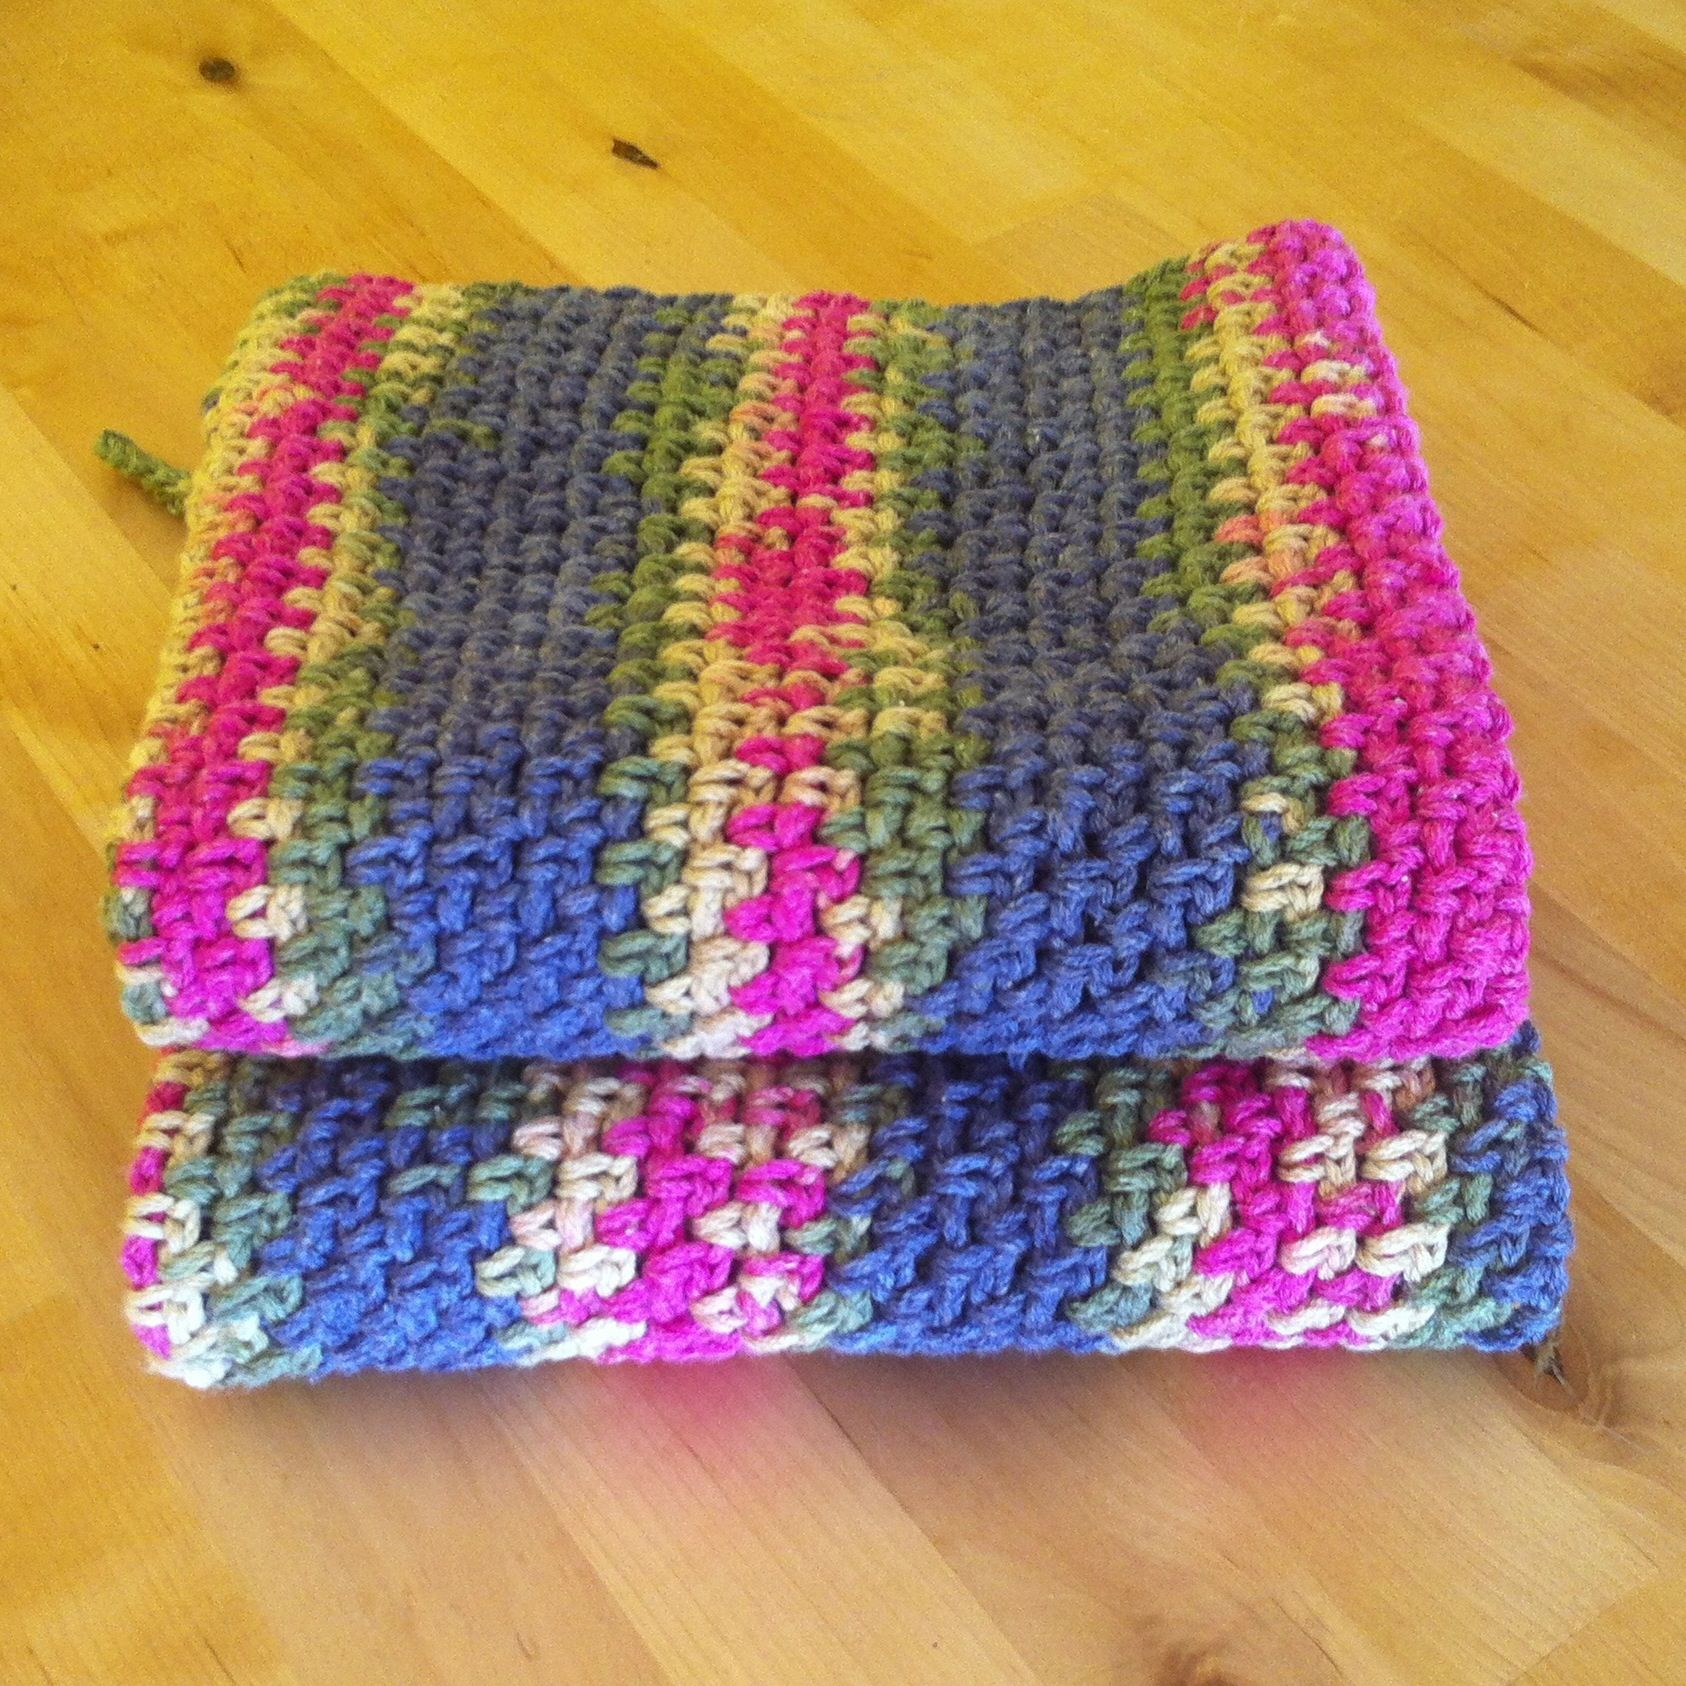 Crocheting Dish Towels : Dish towels in crochet vowen stitch. Crafty Hooker! Pinterest